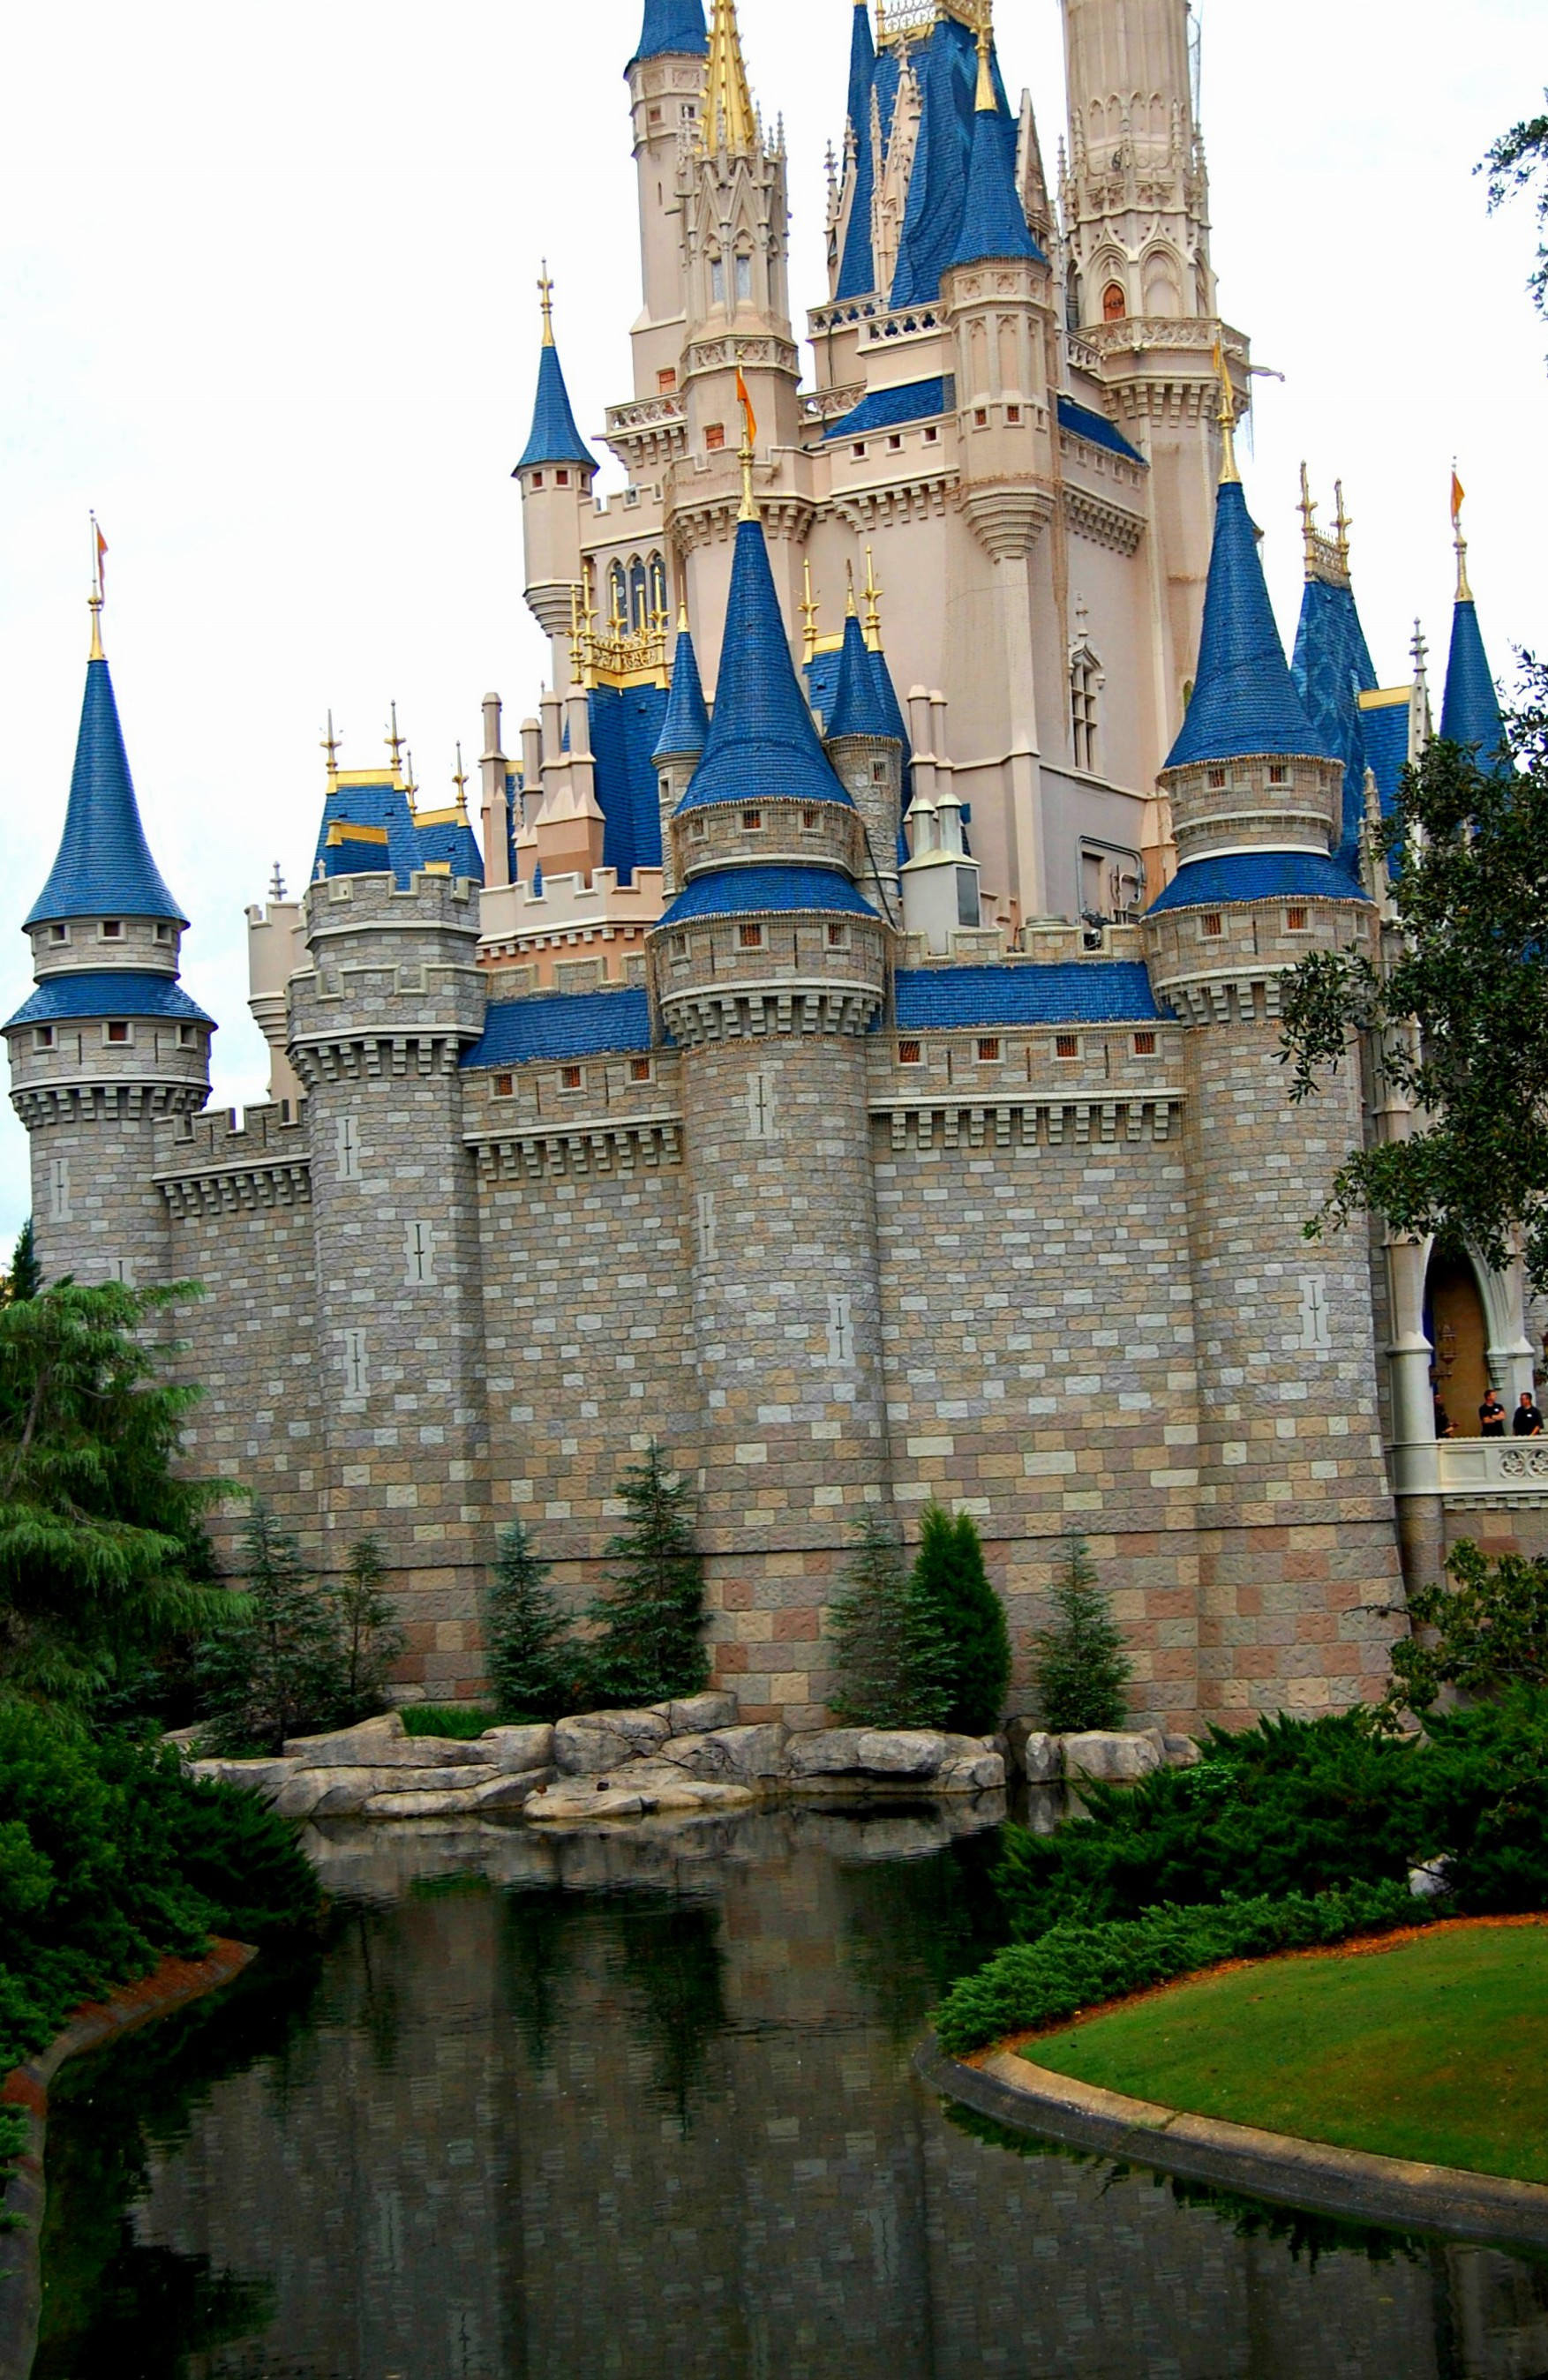 The Magic Kingdom's Cinderella Castle